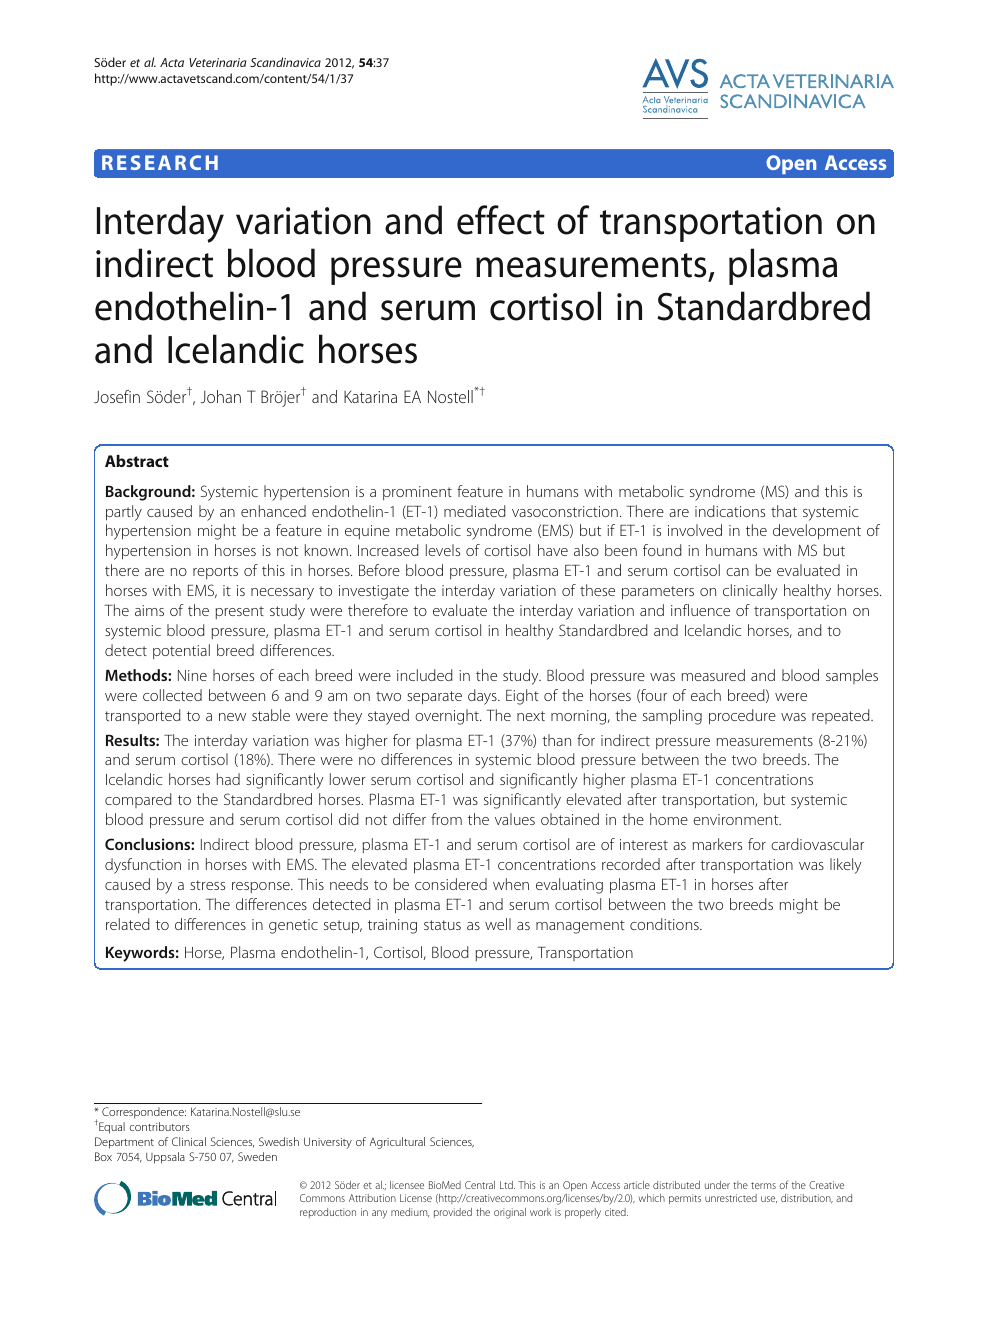 Interday variation and effect of transportation on indirect